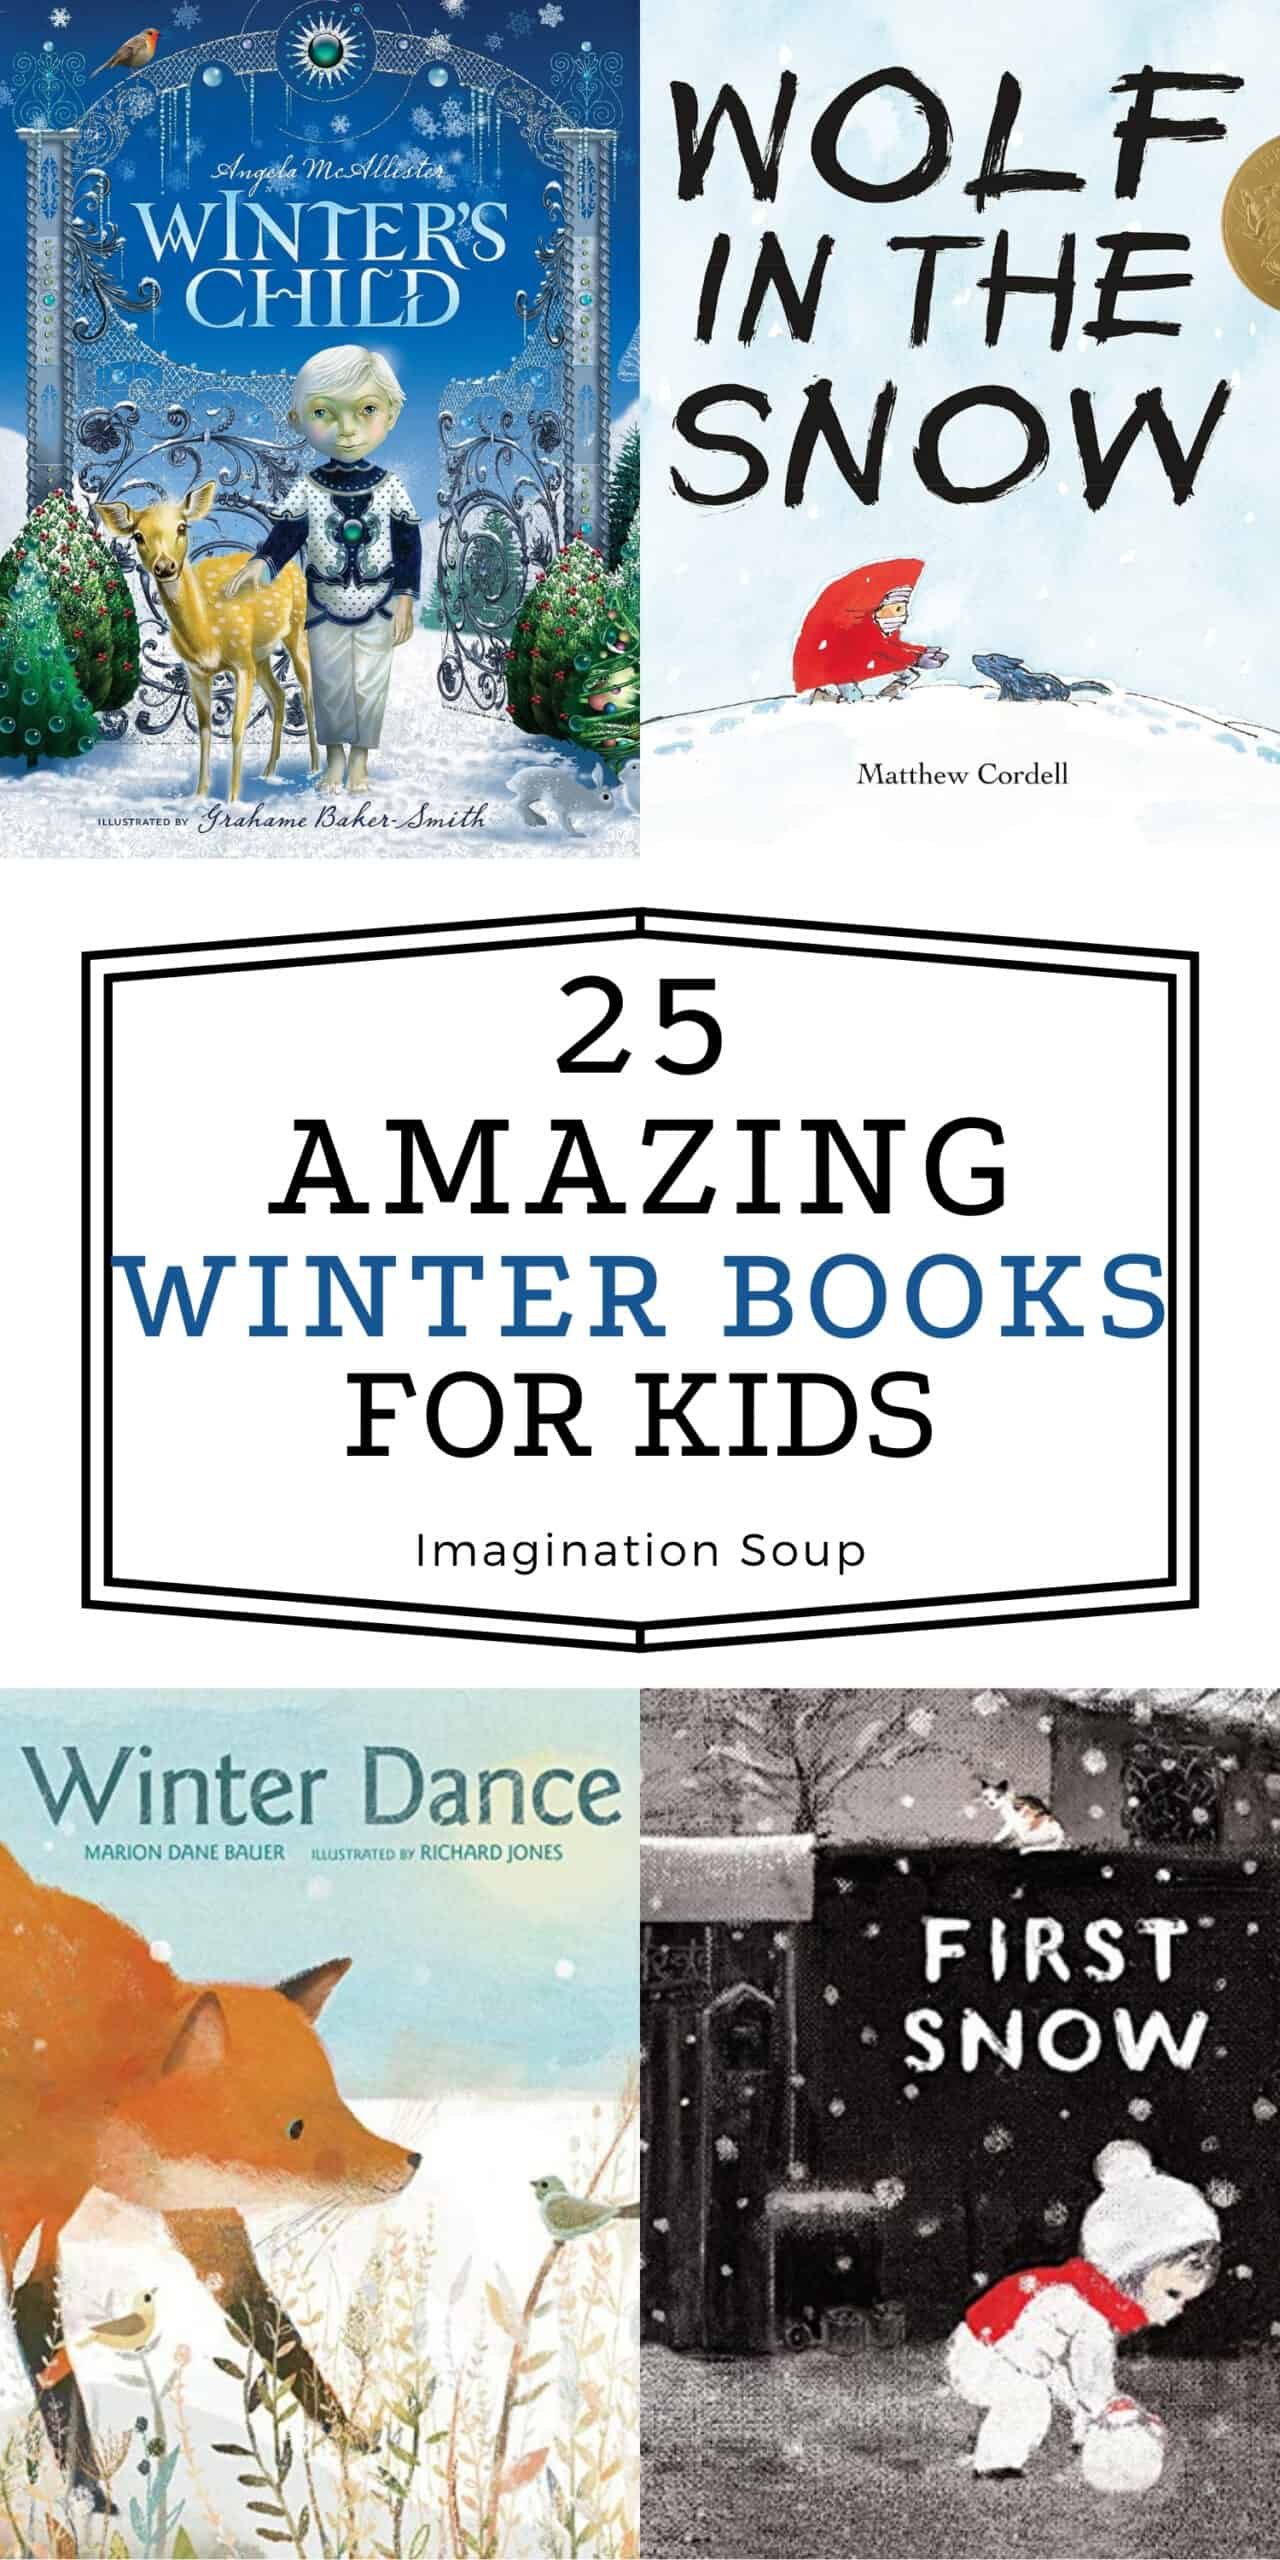 Amazing books about winter for children